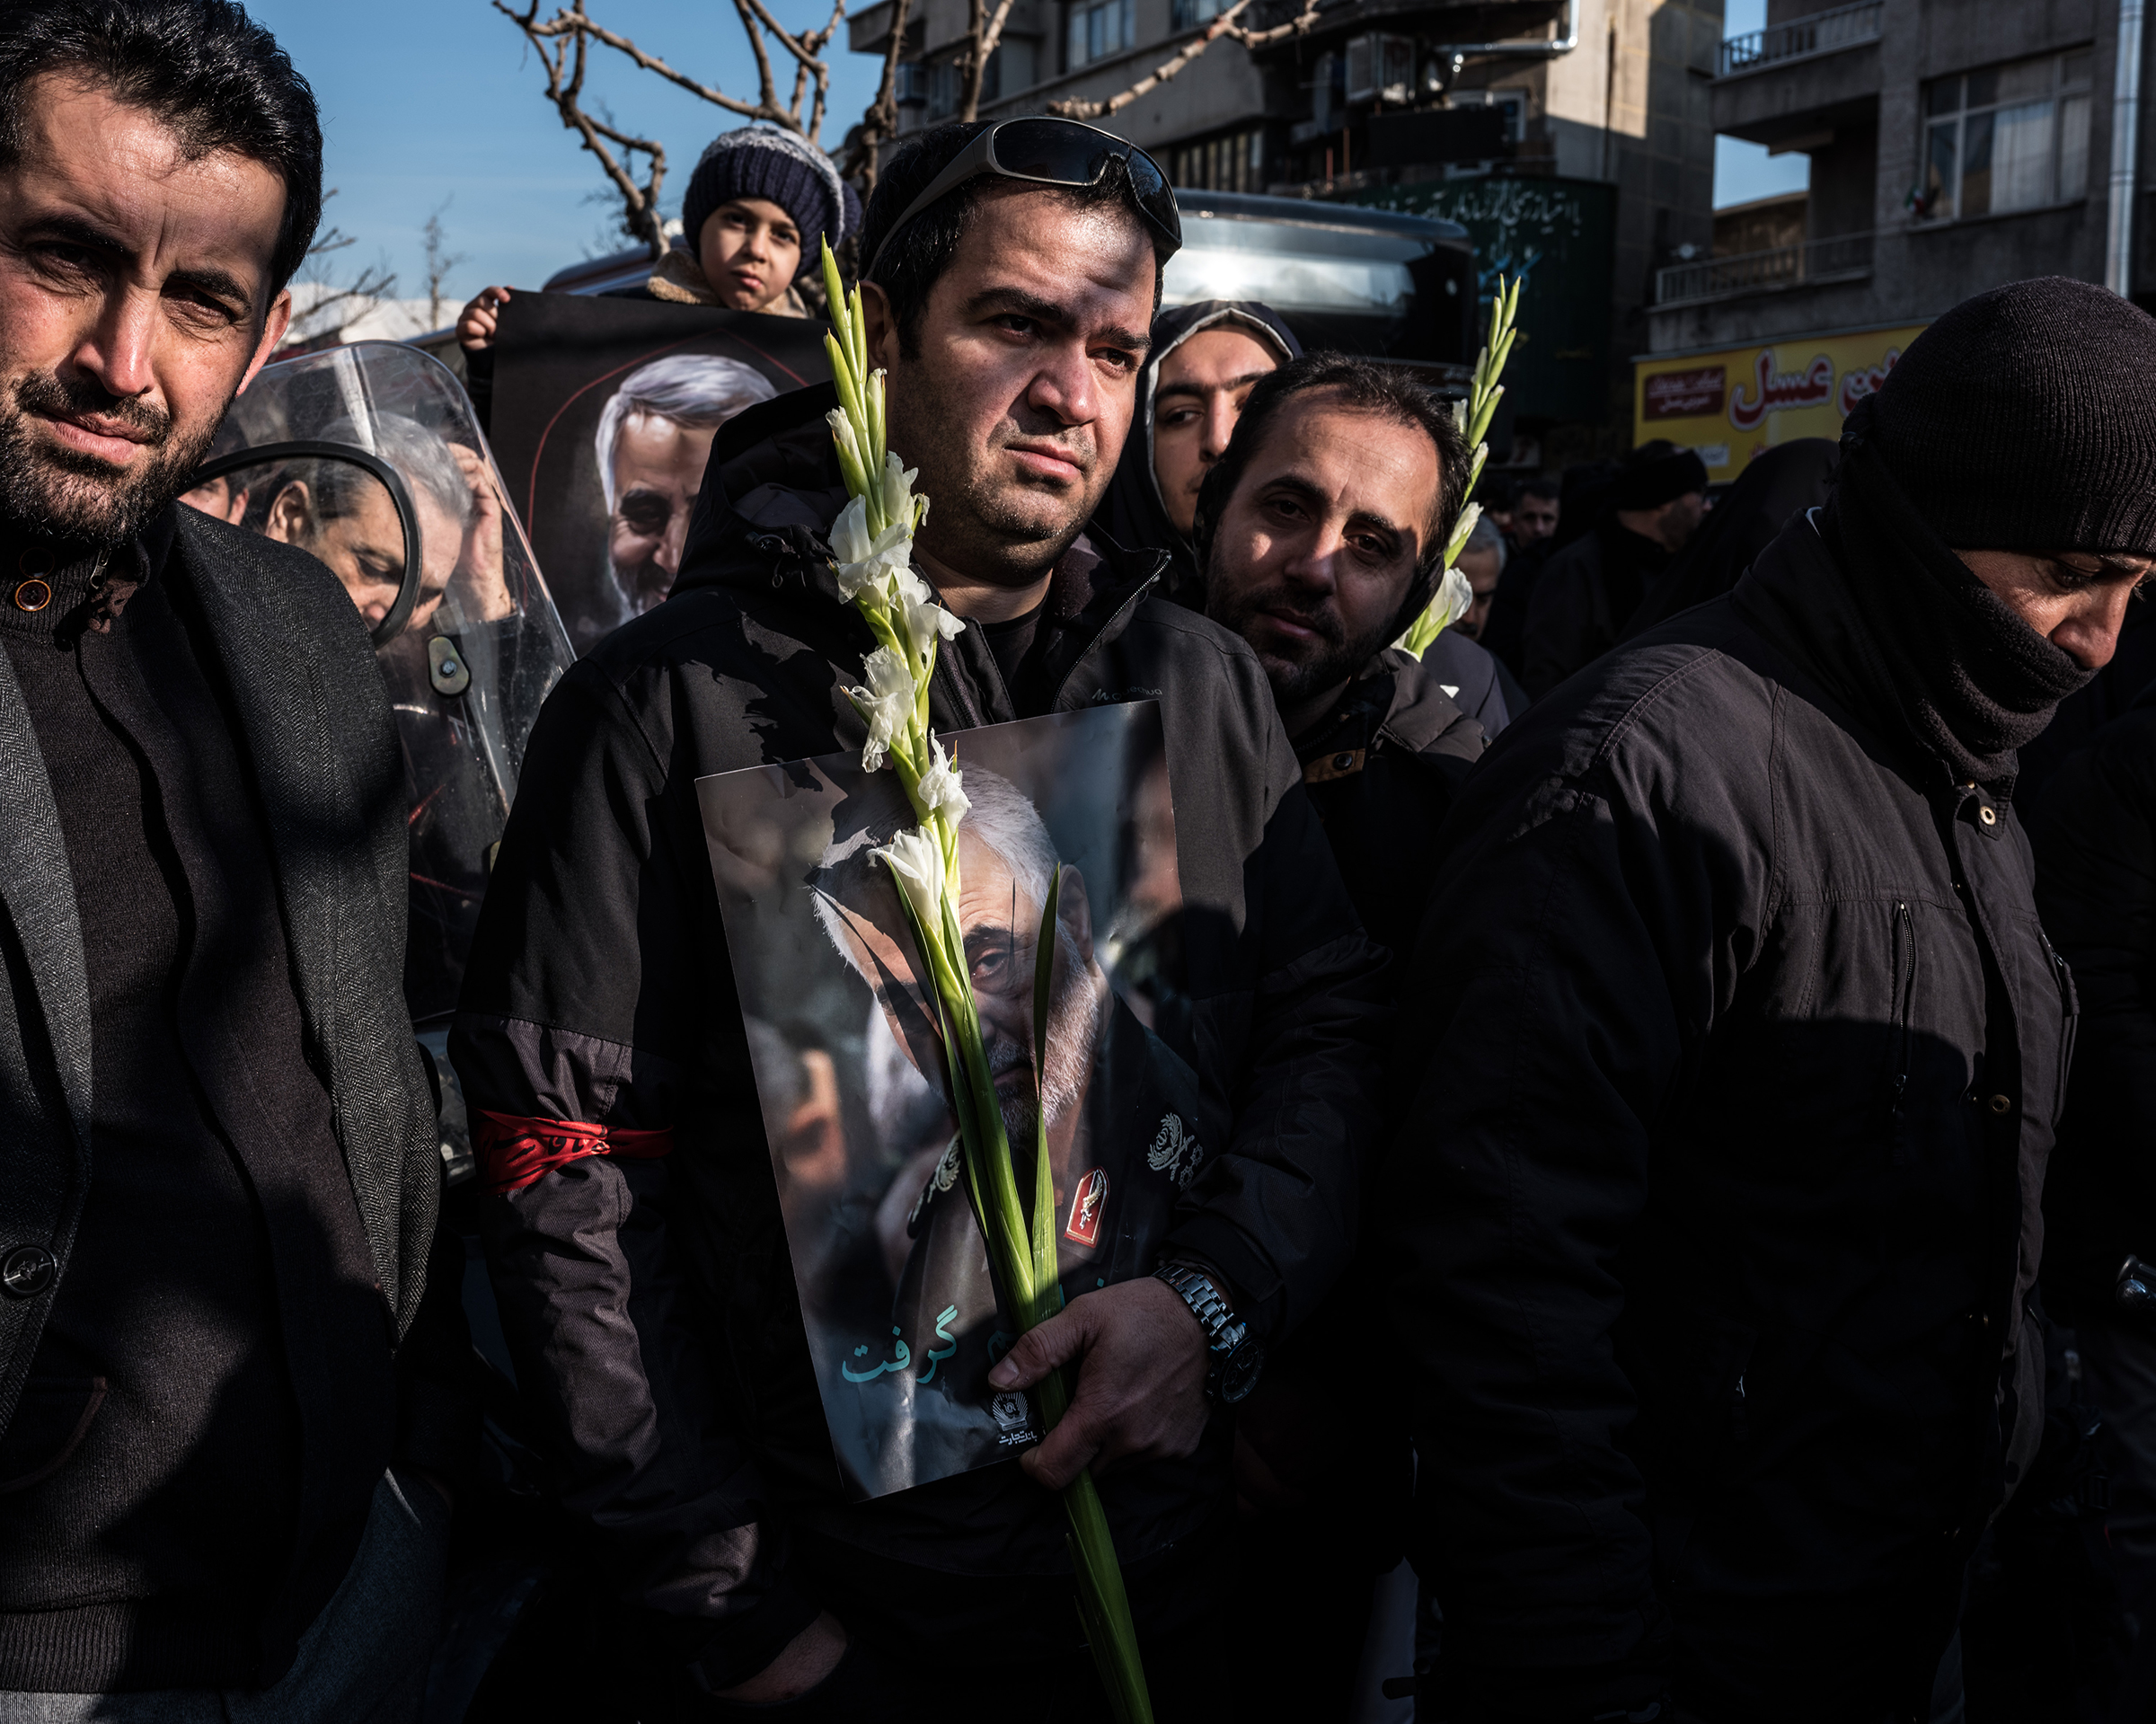 Iranians gathered in the streets of Tehran on Jan. 6 to mourn Soleimani following his killing, by a U.S. airstrike in Baghdad, days earlier.